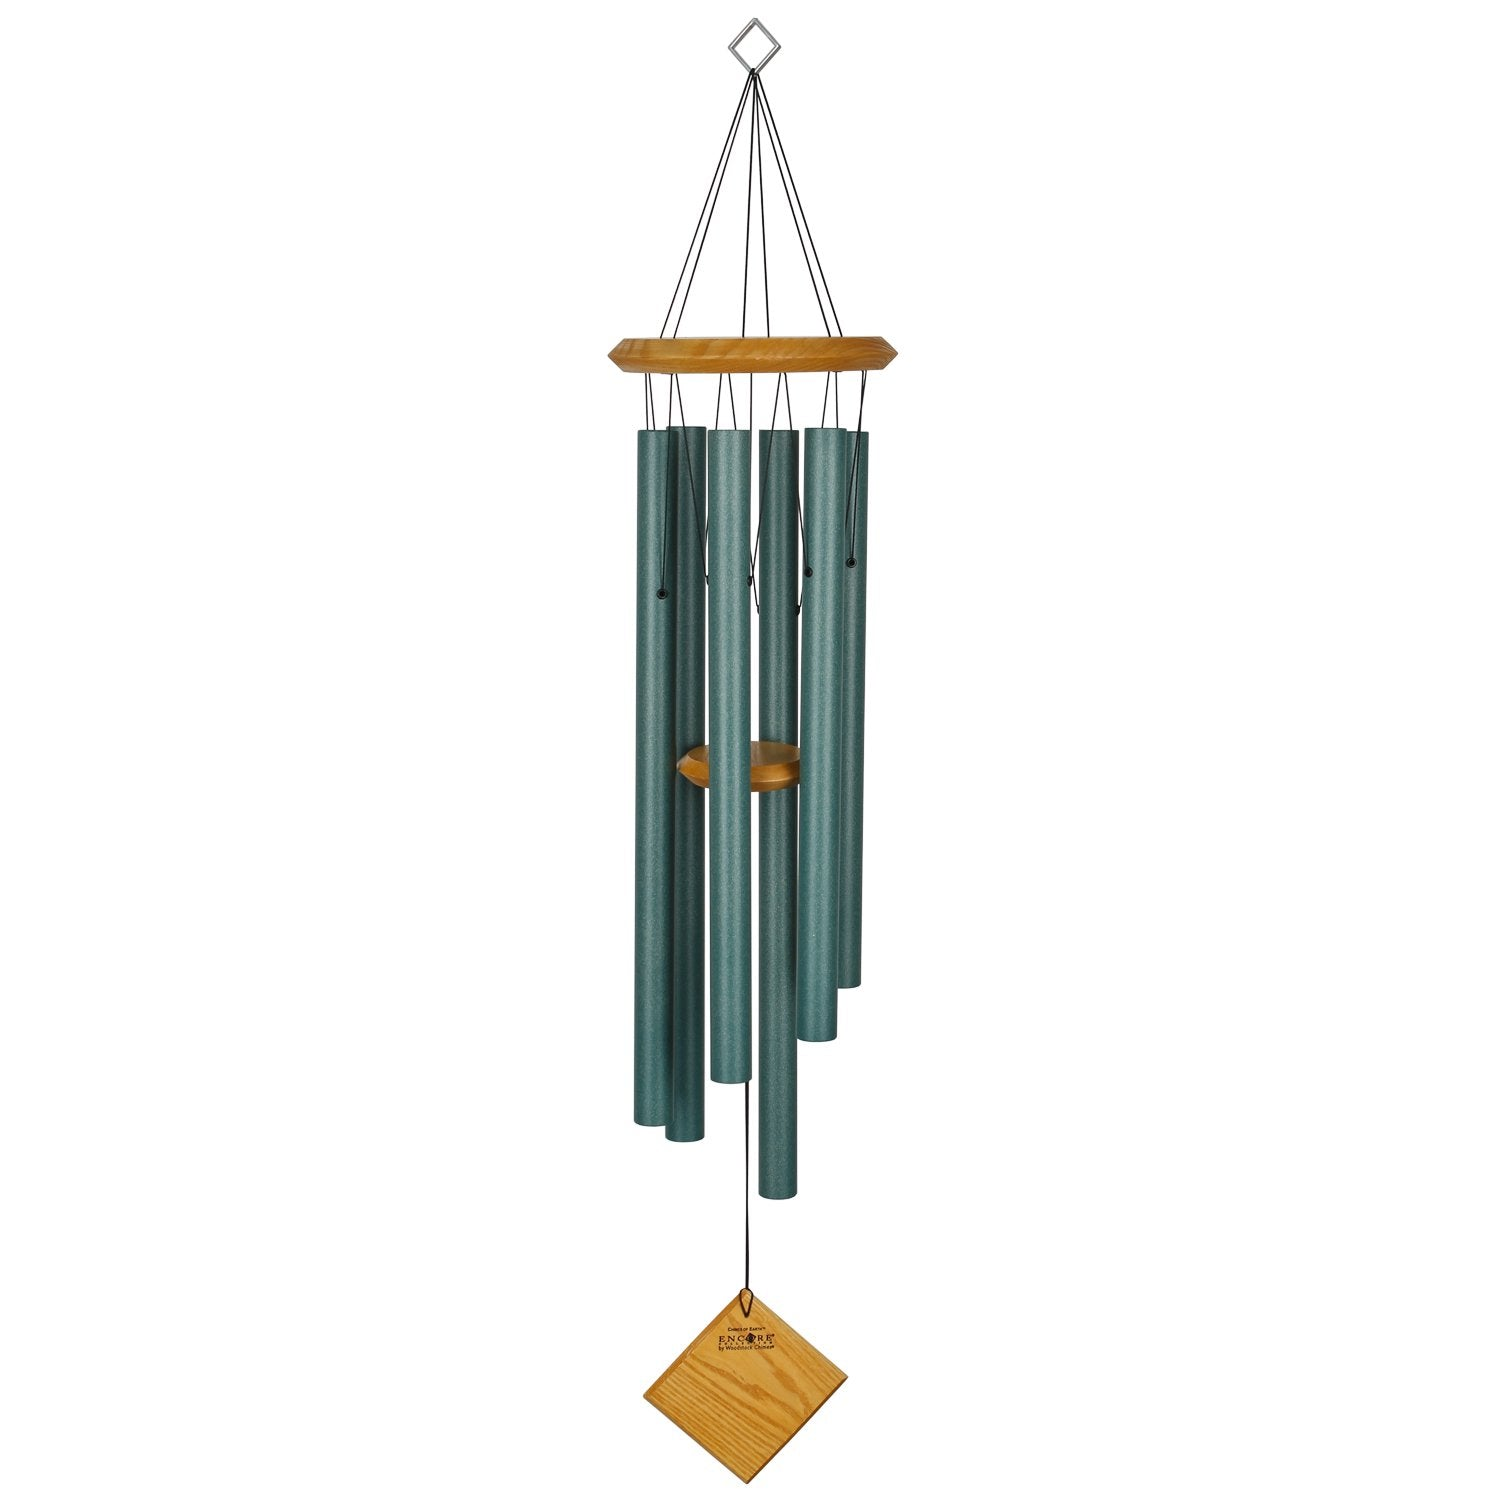 Encore Chimes of Earth - Verdigris full product image